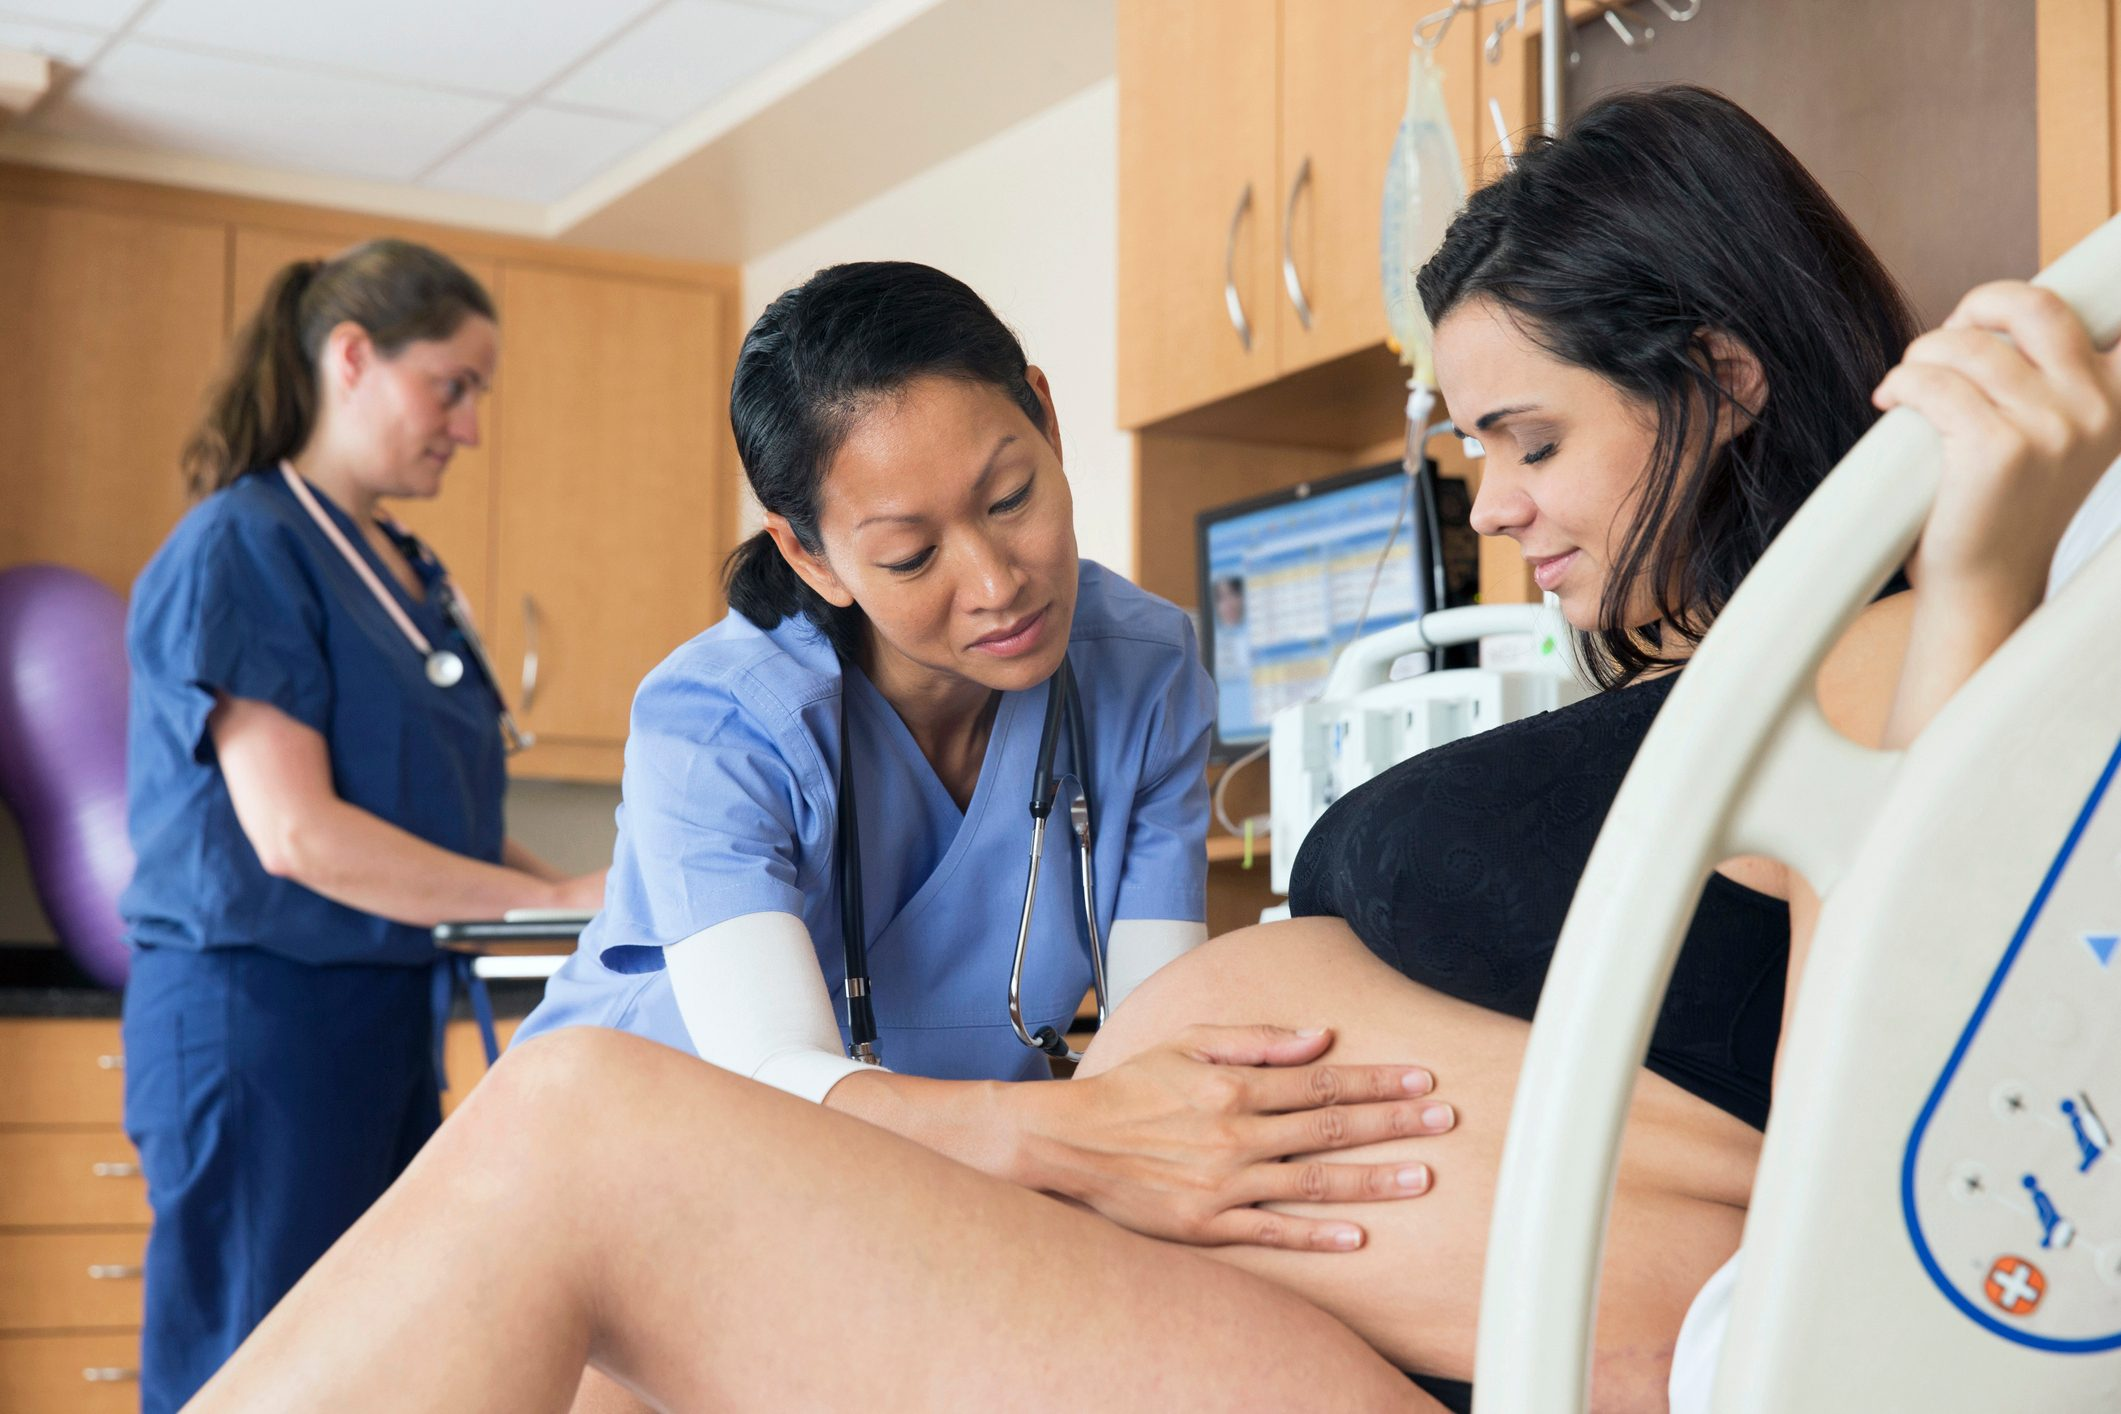 doctor assisting woman in labor